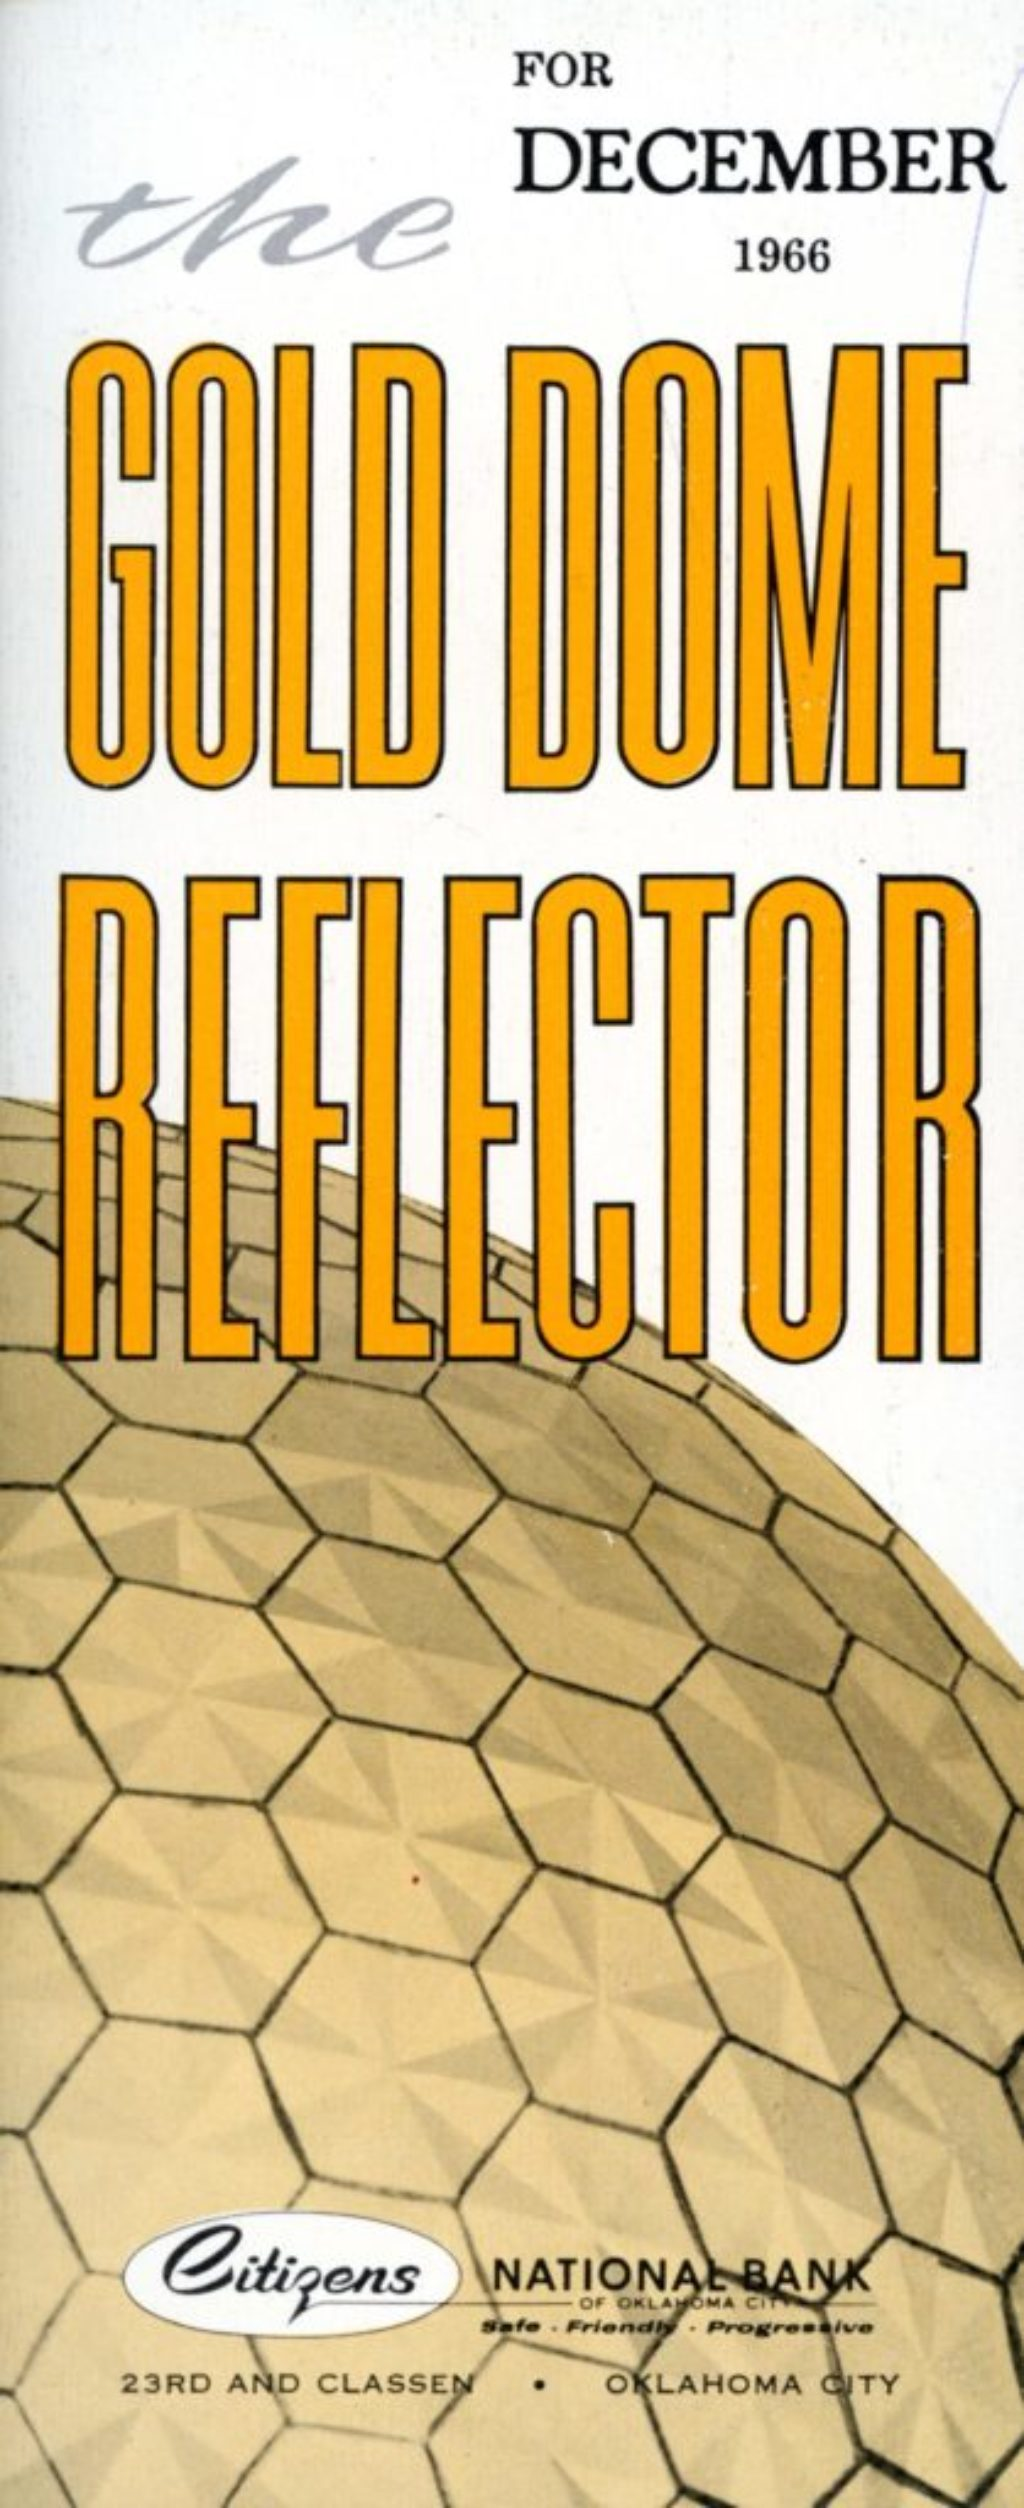 The Gold Dome Reflector: Our Christmas Gifts To You